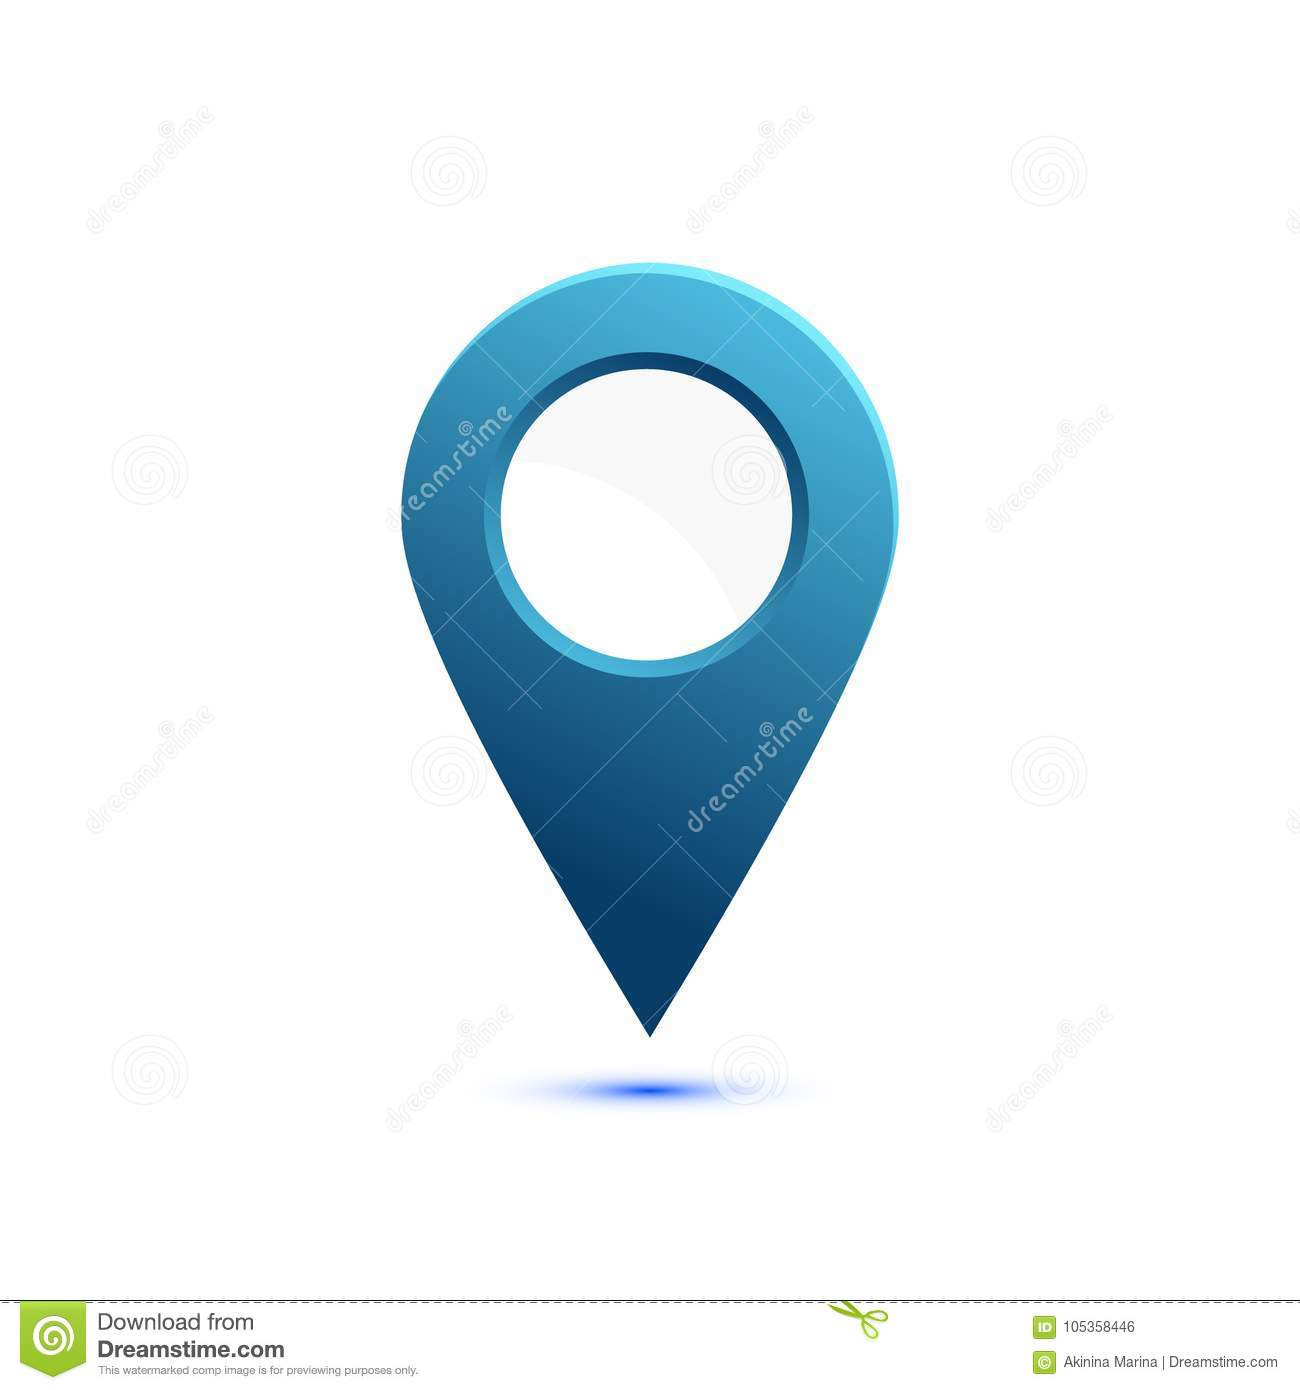 Colored flat icon, vector design with shadow. Map pointer with White circle for text. Simple marker